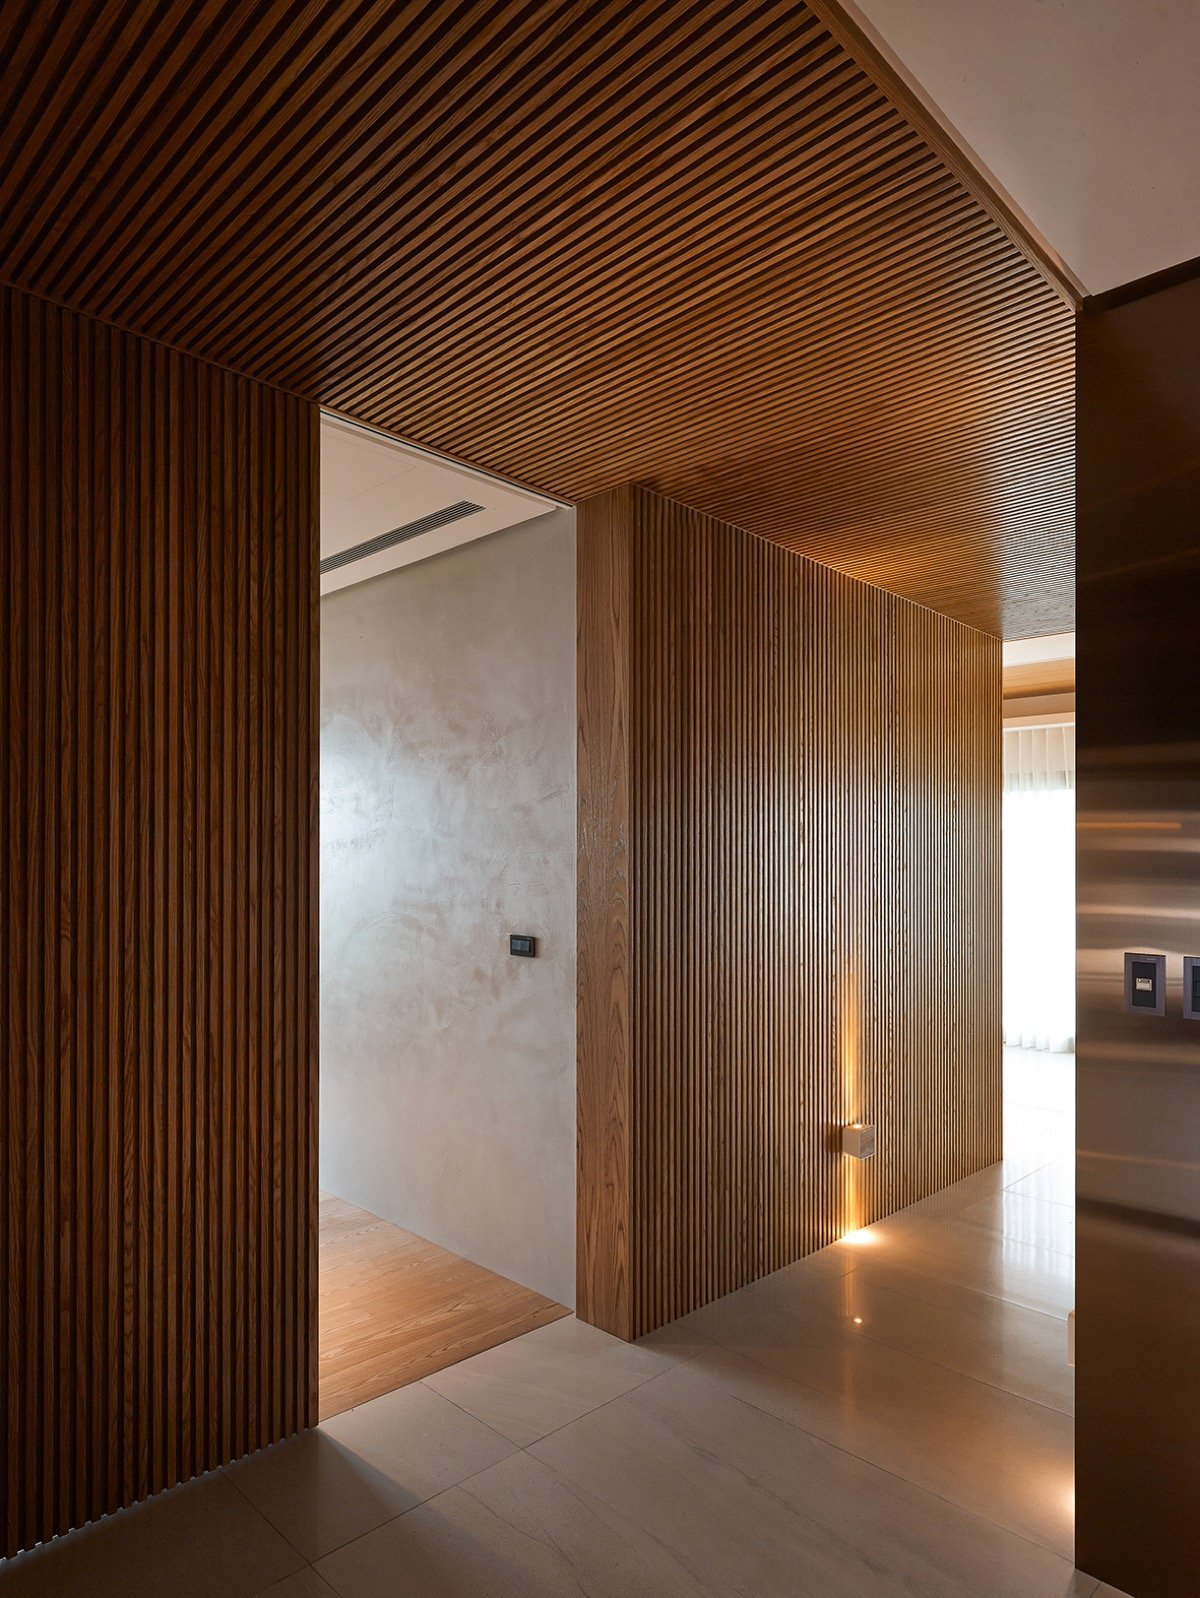 Wood Slat Wall - 4 homes with design focused on beautiful wood elements